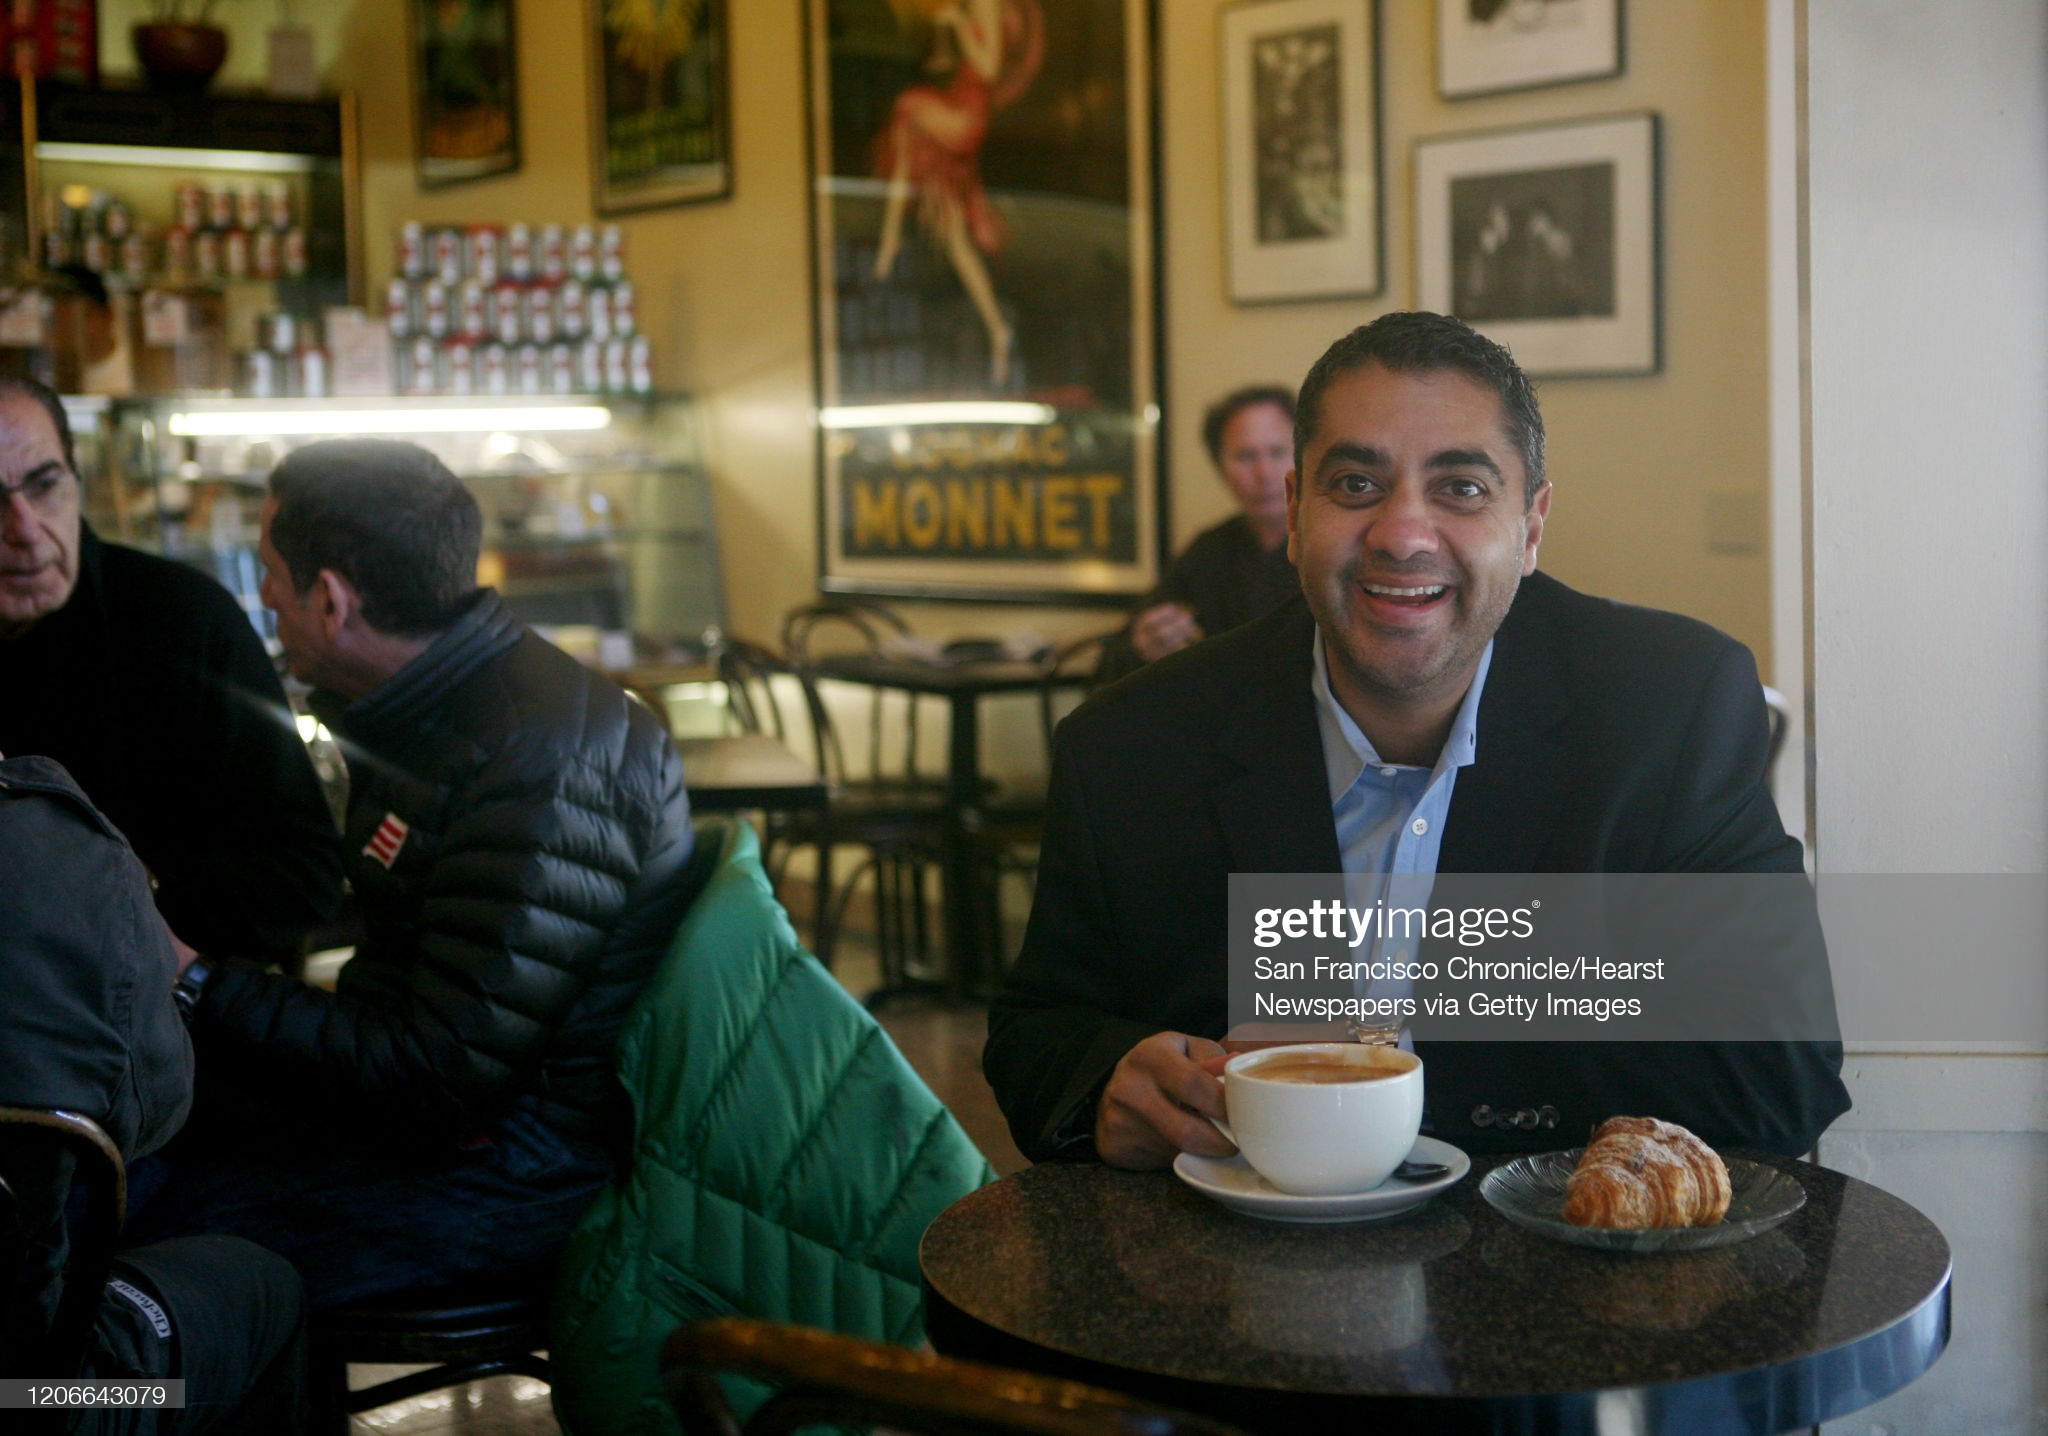 Sipping a double latte, Michael Mina, Executive Chef of Michael Mina at the Westin St. Francis, sits for a portrait at Caffe Greco on Thursday Feb. 12, 2009 in San Francisco, Calif. (Photo by Mike Kepka/San Francisco Chronicle via Getty Images)